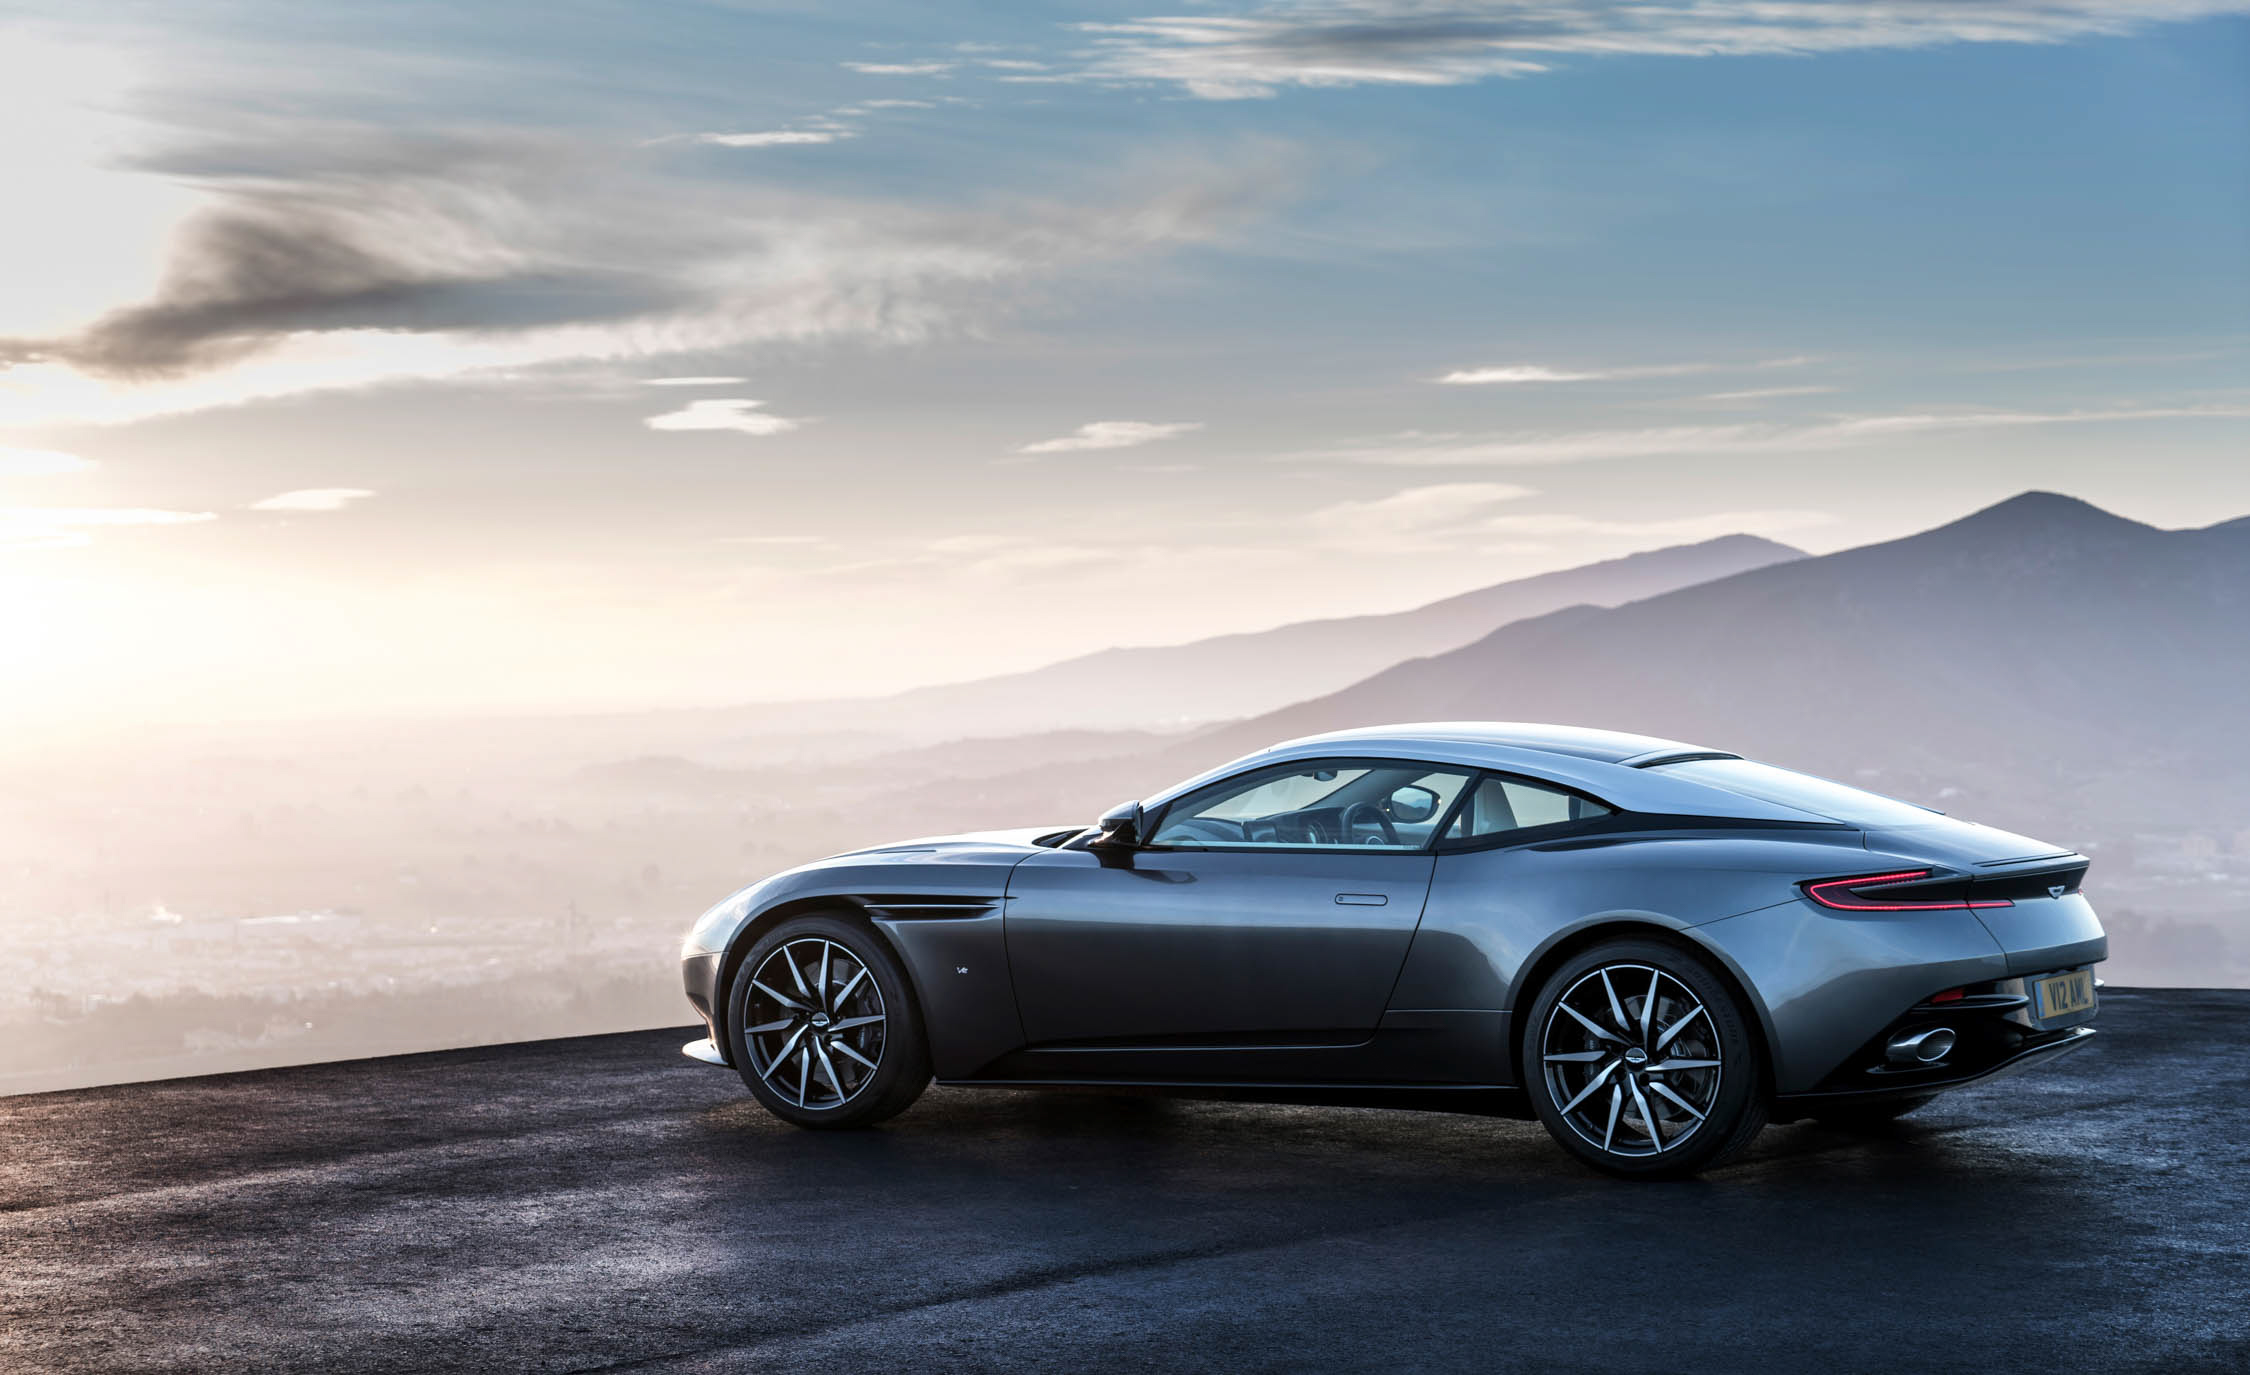 2017 Aston Martin Db11 Exterior Rear And Side View (Photo 6 of 22)